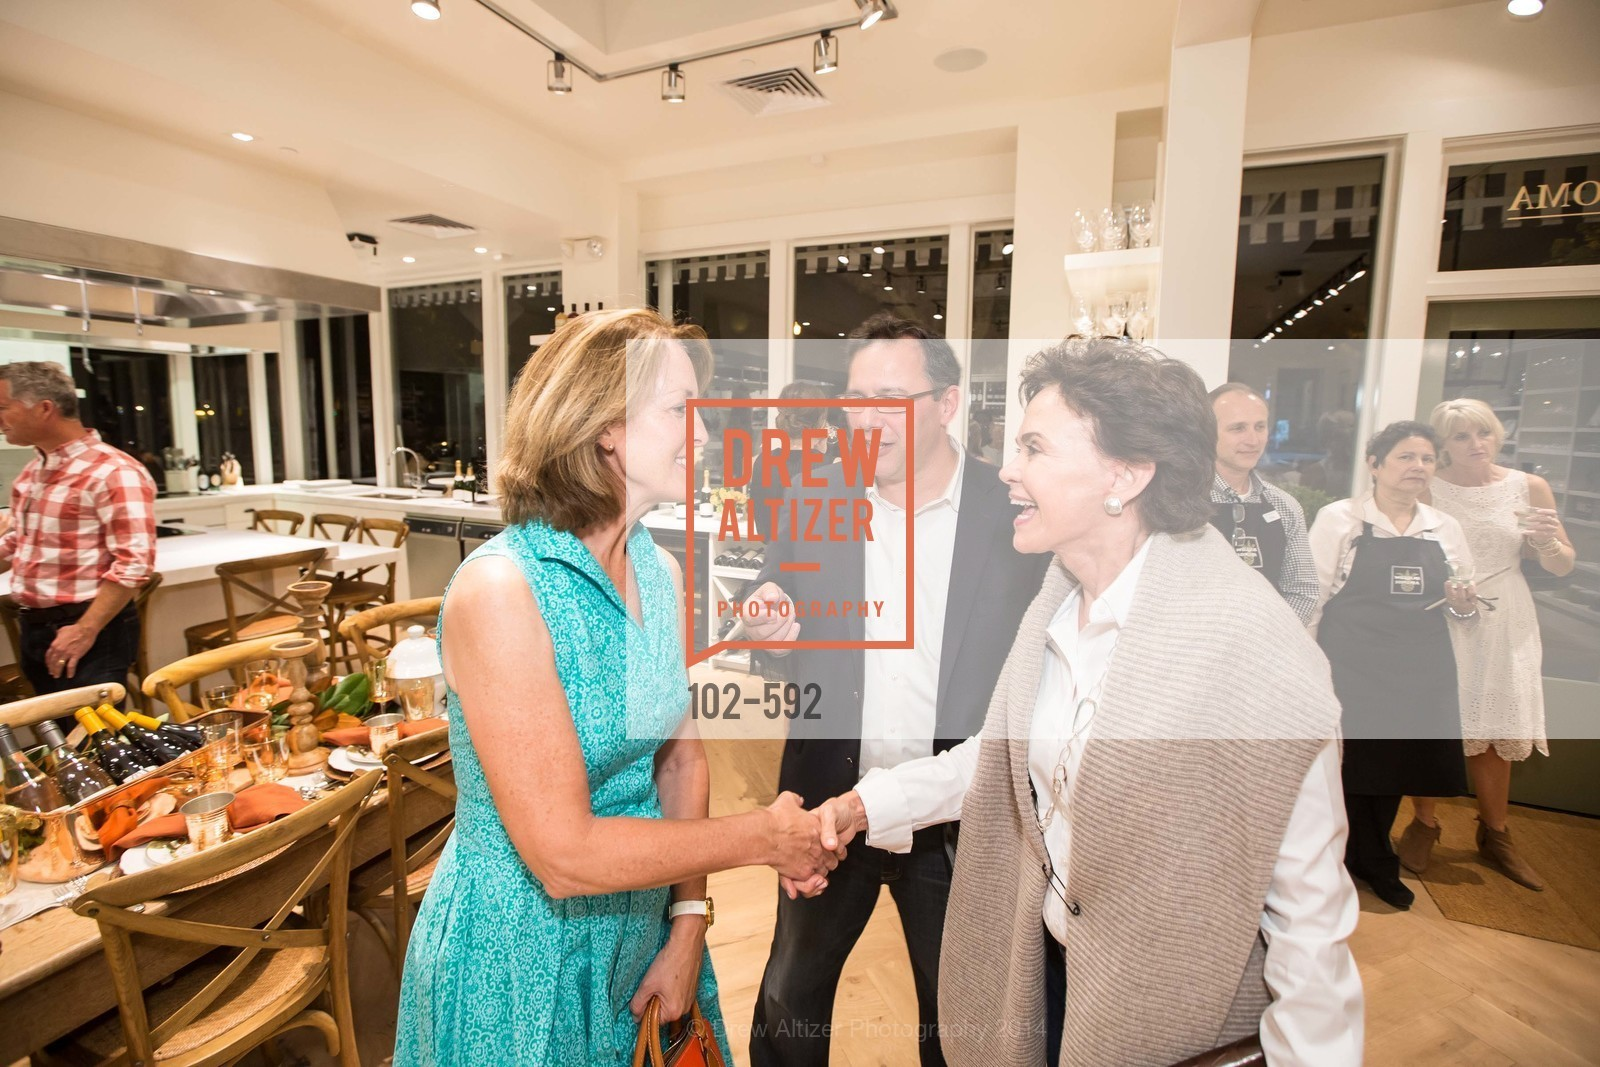 Suzanne Sassi, Pete Sassi, Mary Lester, WILLIAMS-SONOMA Cochon BBQ Celebration, US, October 2nd, 2014,Drew Altizer, Drew Altizer Photography, full-service agency, private events, San Francisco photographer, photographer california